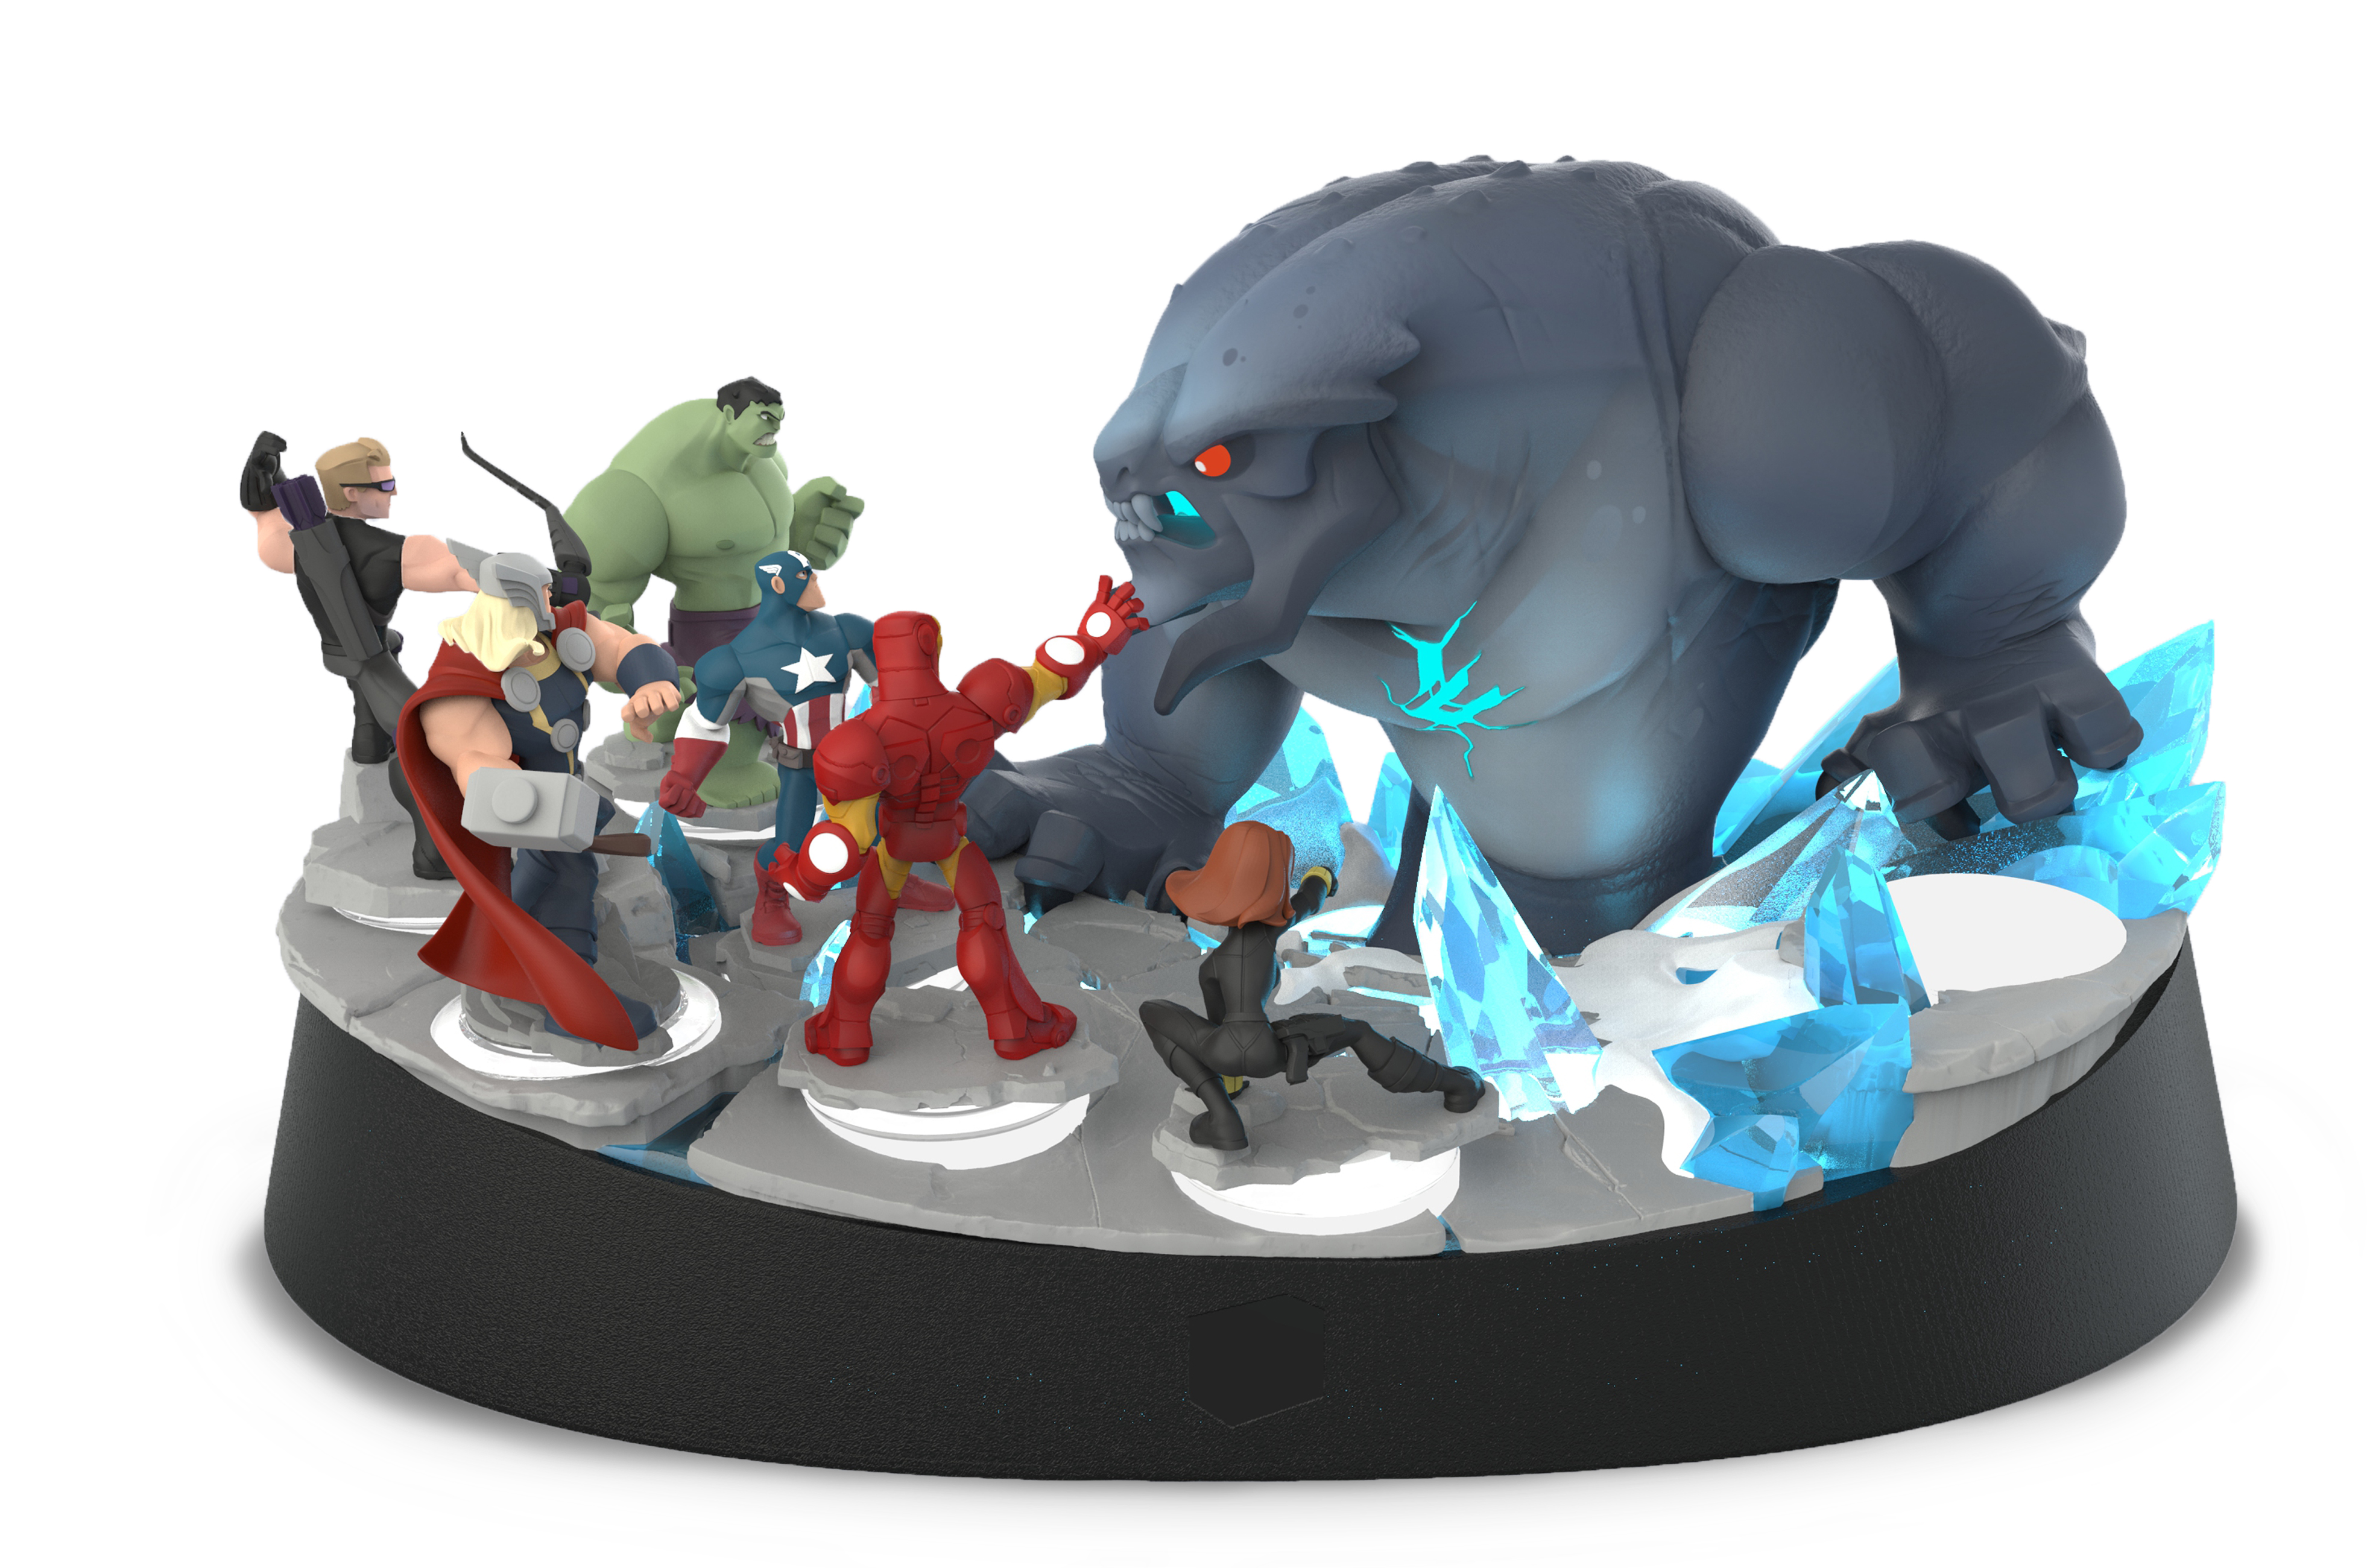 Disney_Intinity_avengers_Collectors_Edition